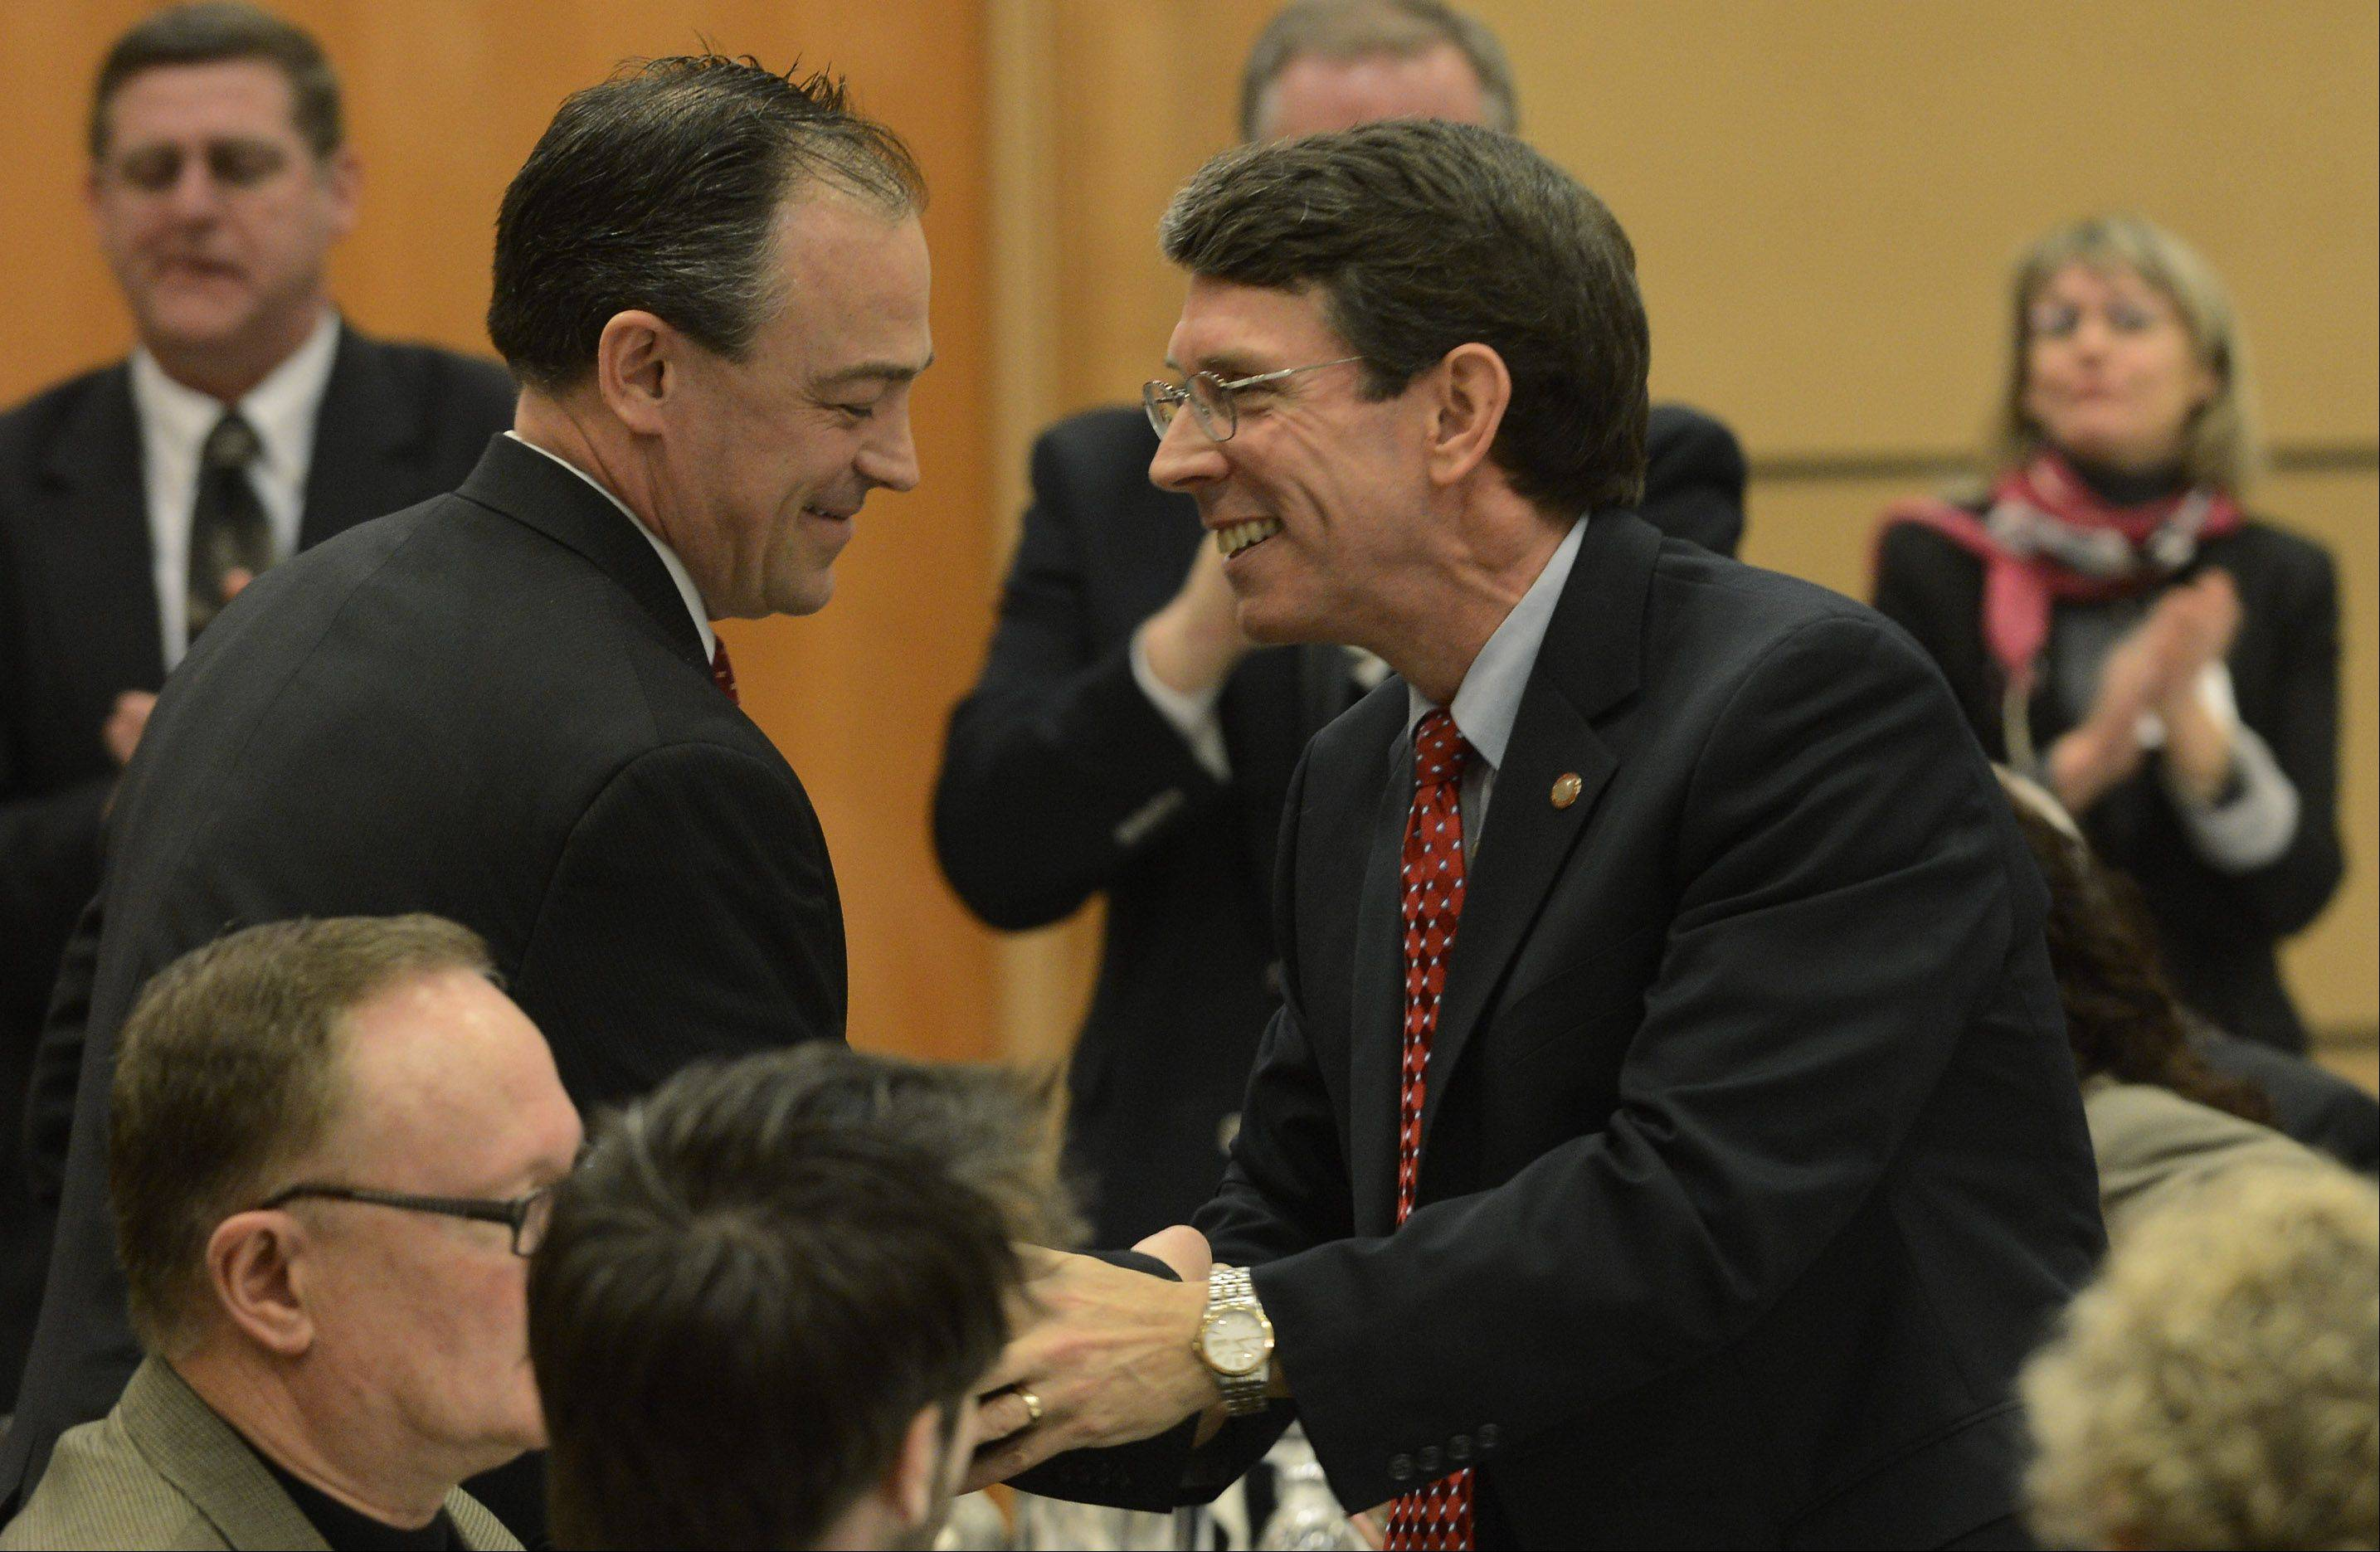 Arlington Heights Mayor Tom Hayes, right, shakes hands with Will Beiersdorf following his speech at the community prayer breakfast in Arlington Heights Thursday.